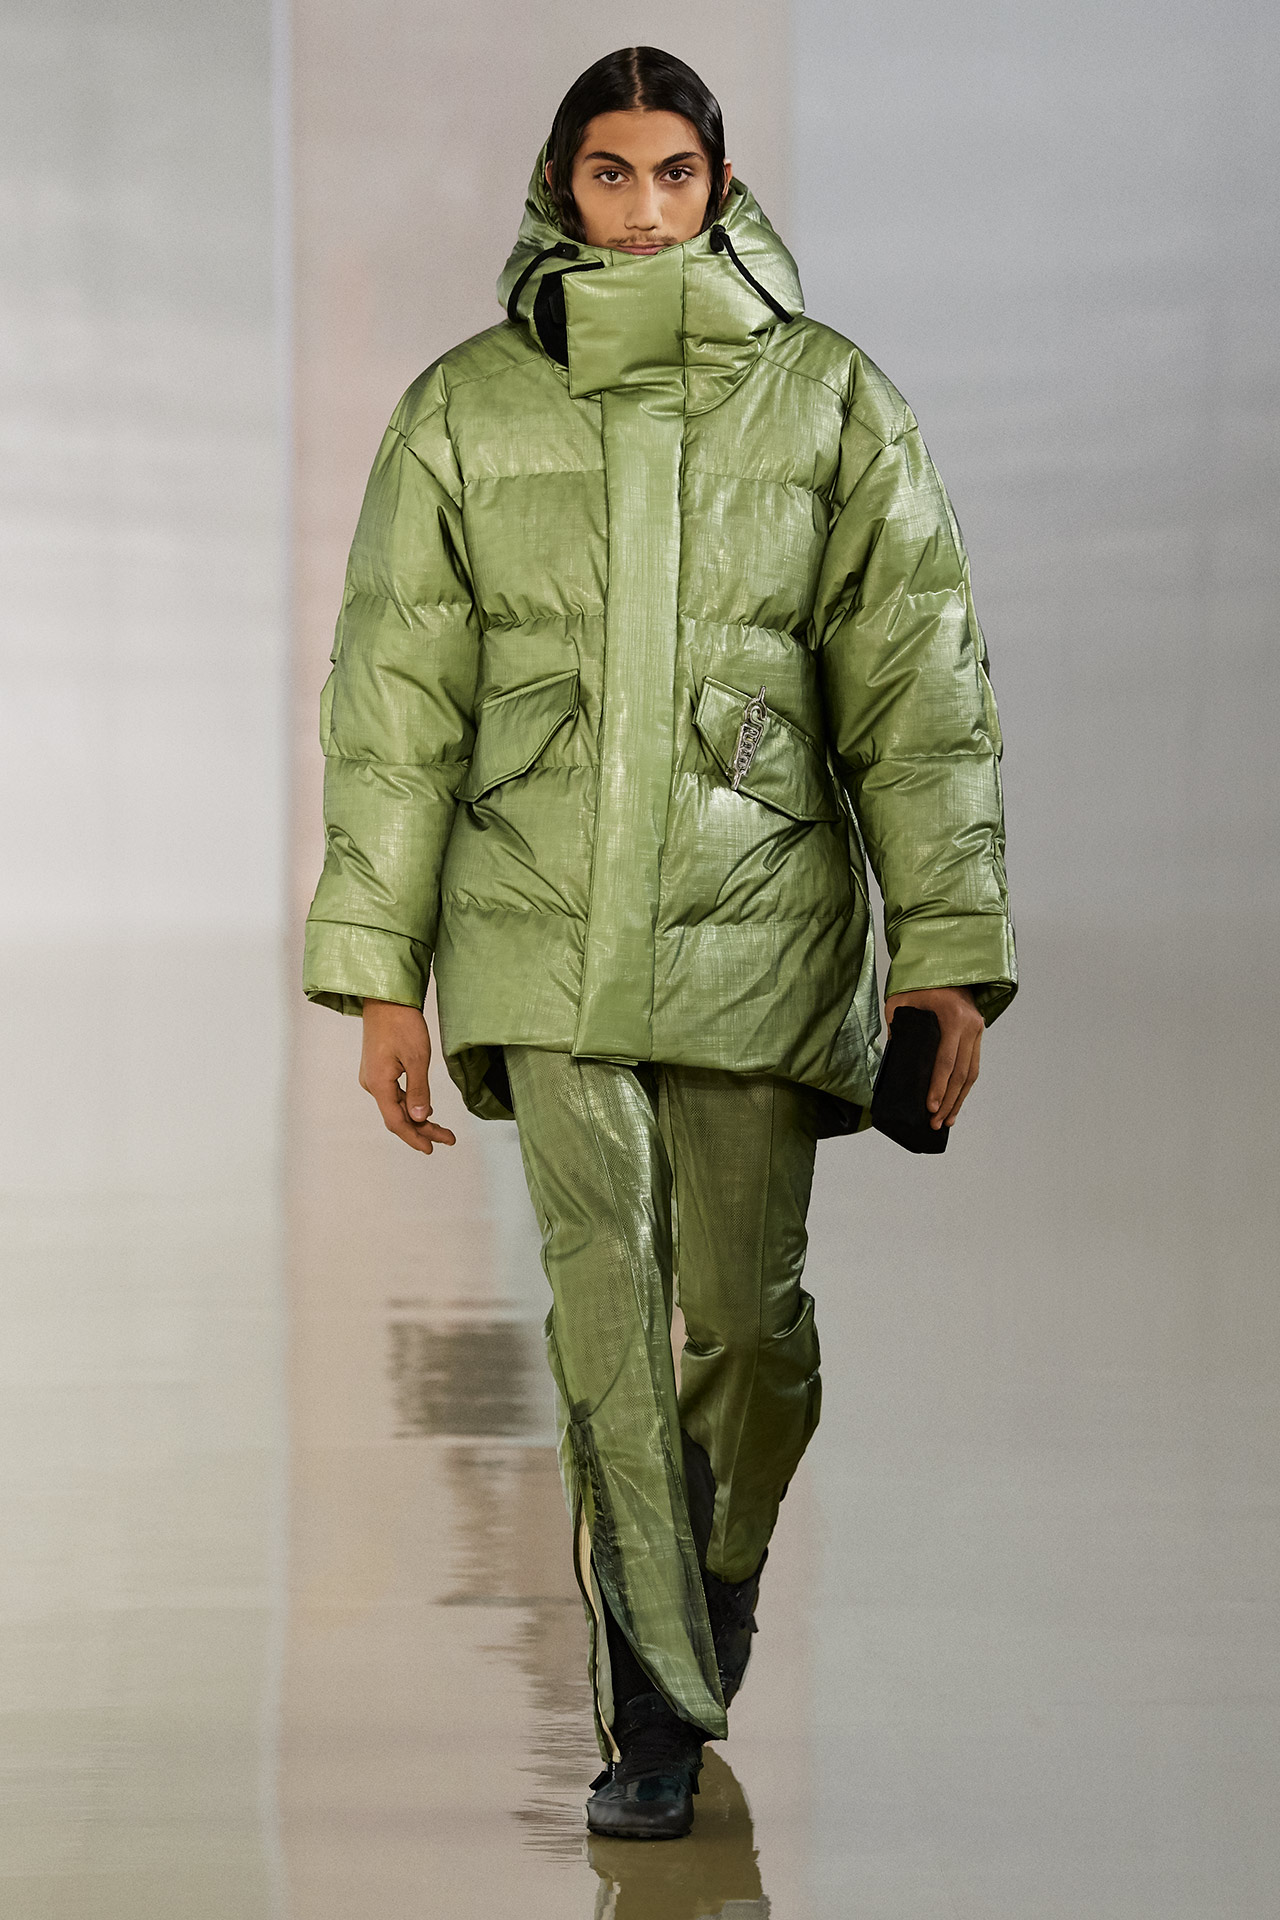 Look Fall/Winter 2020, image 5